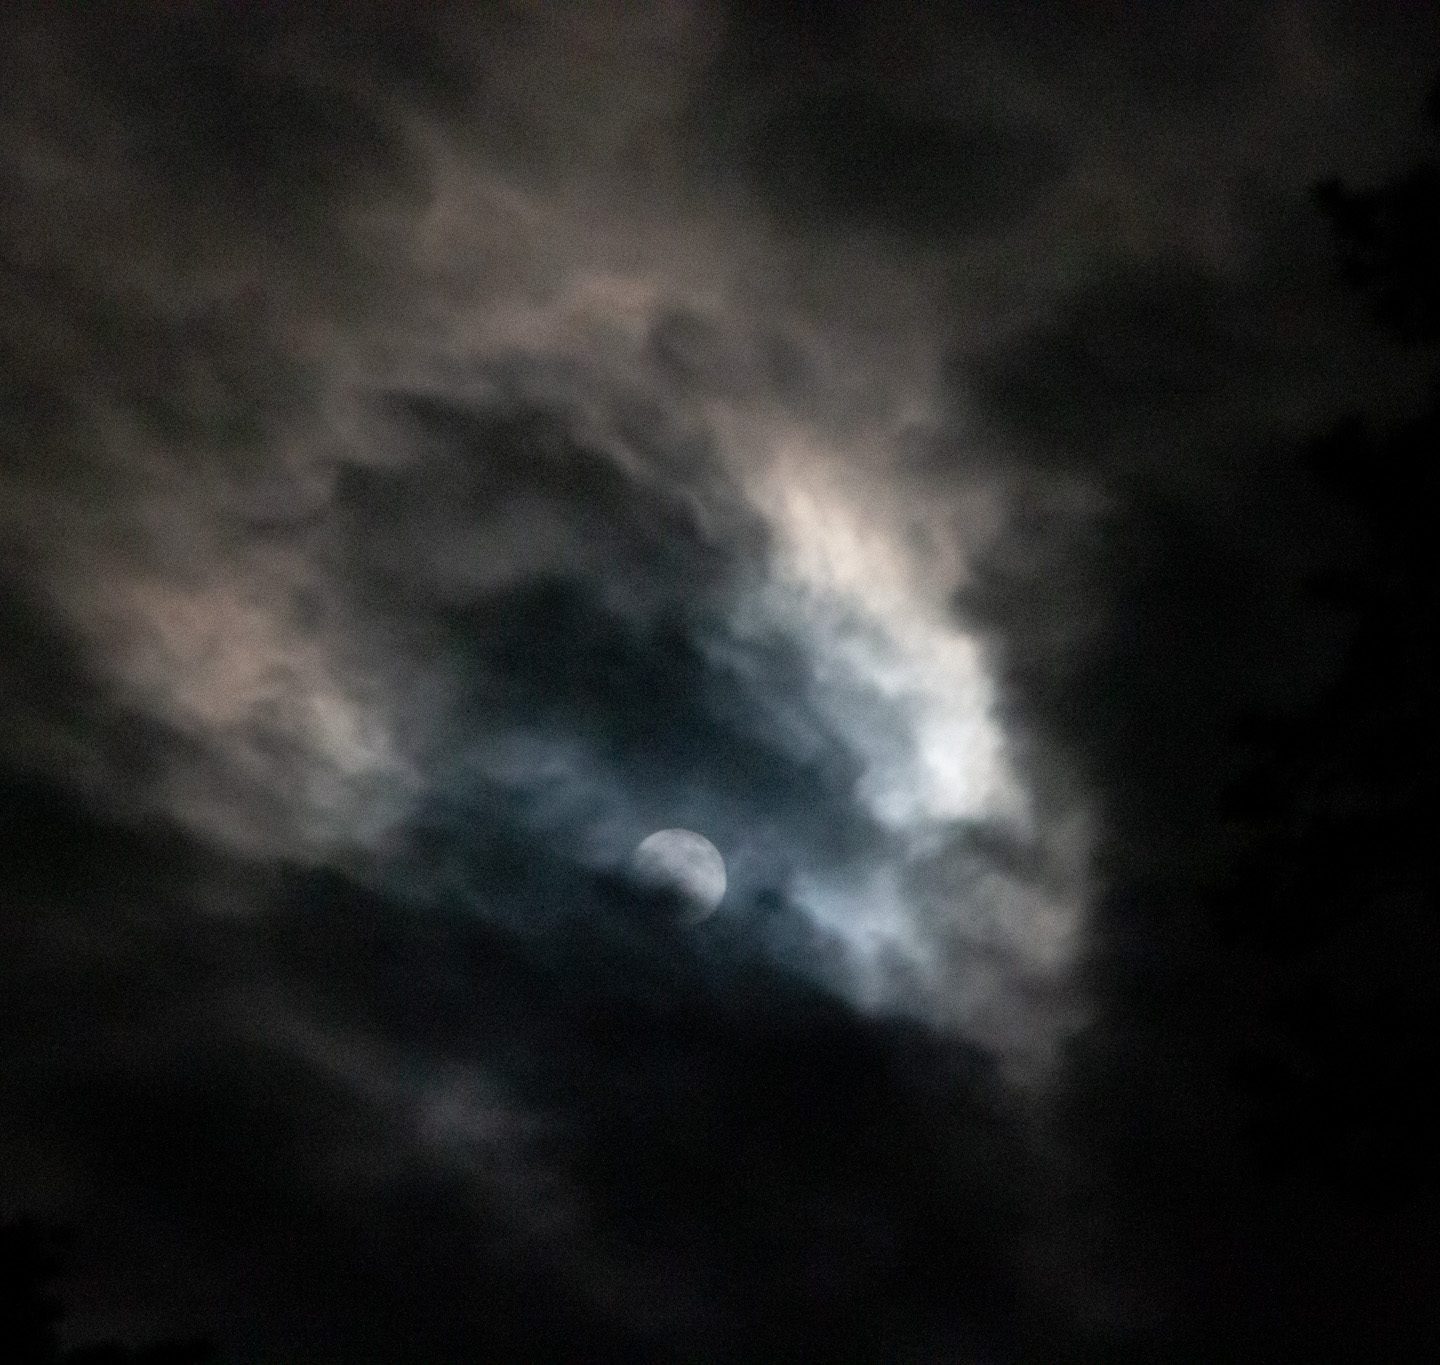 Cloudy Sky with Moon